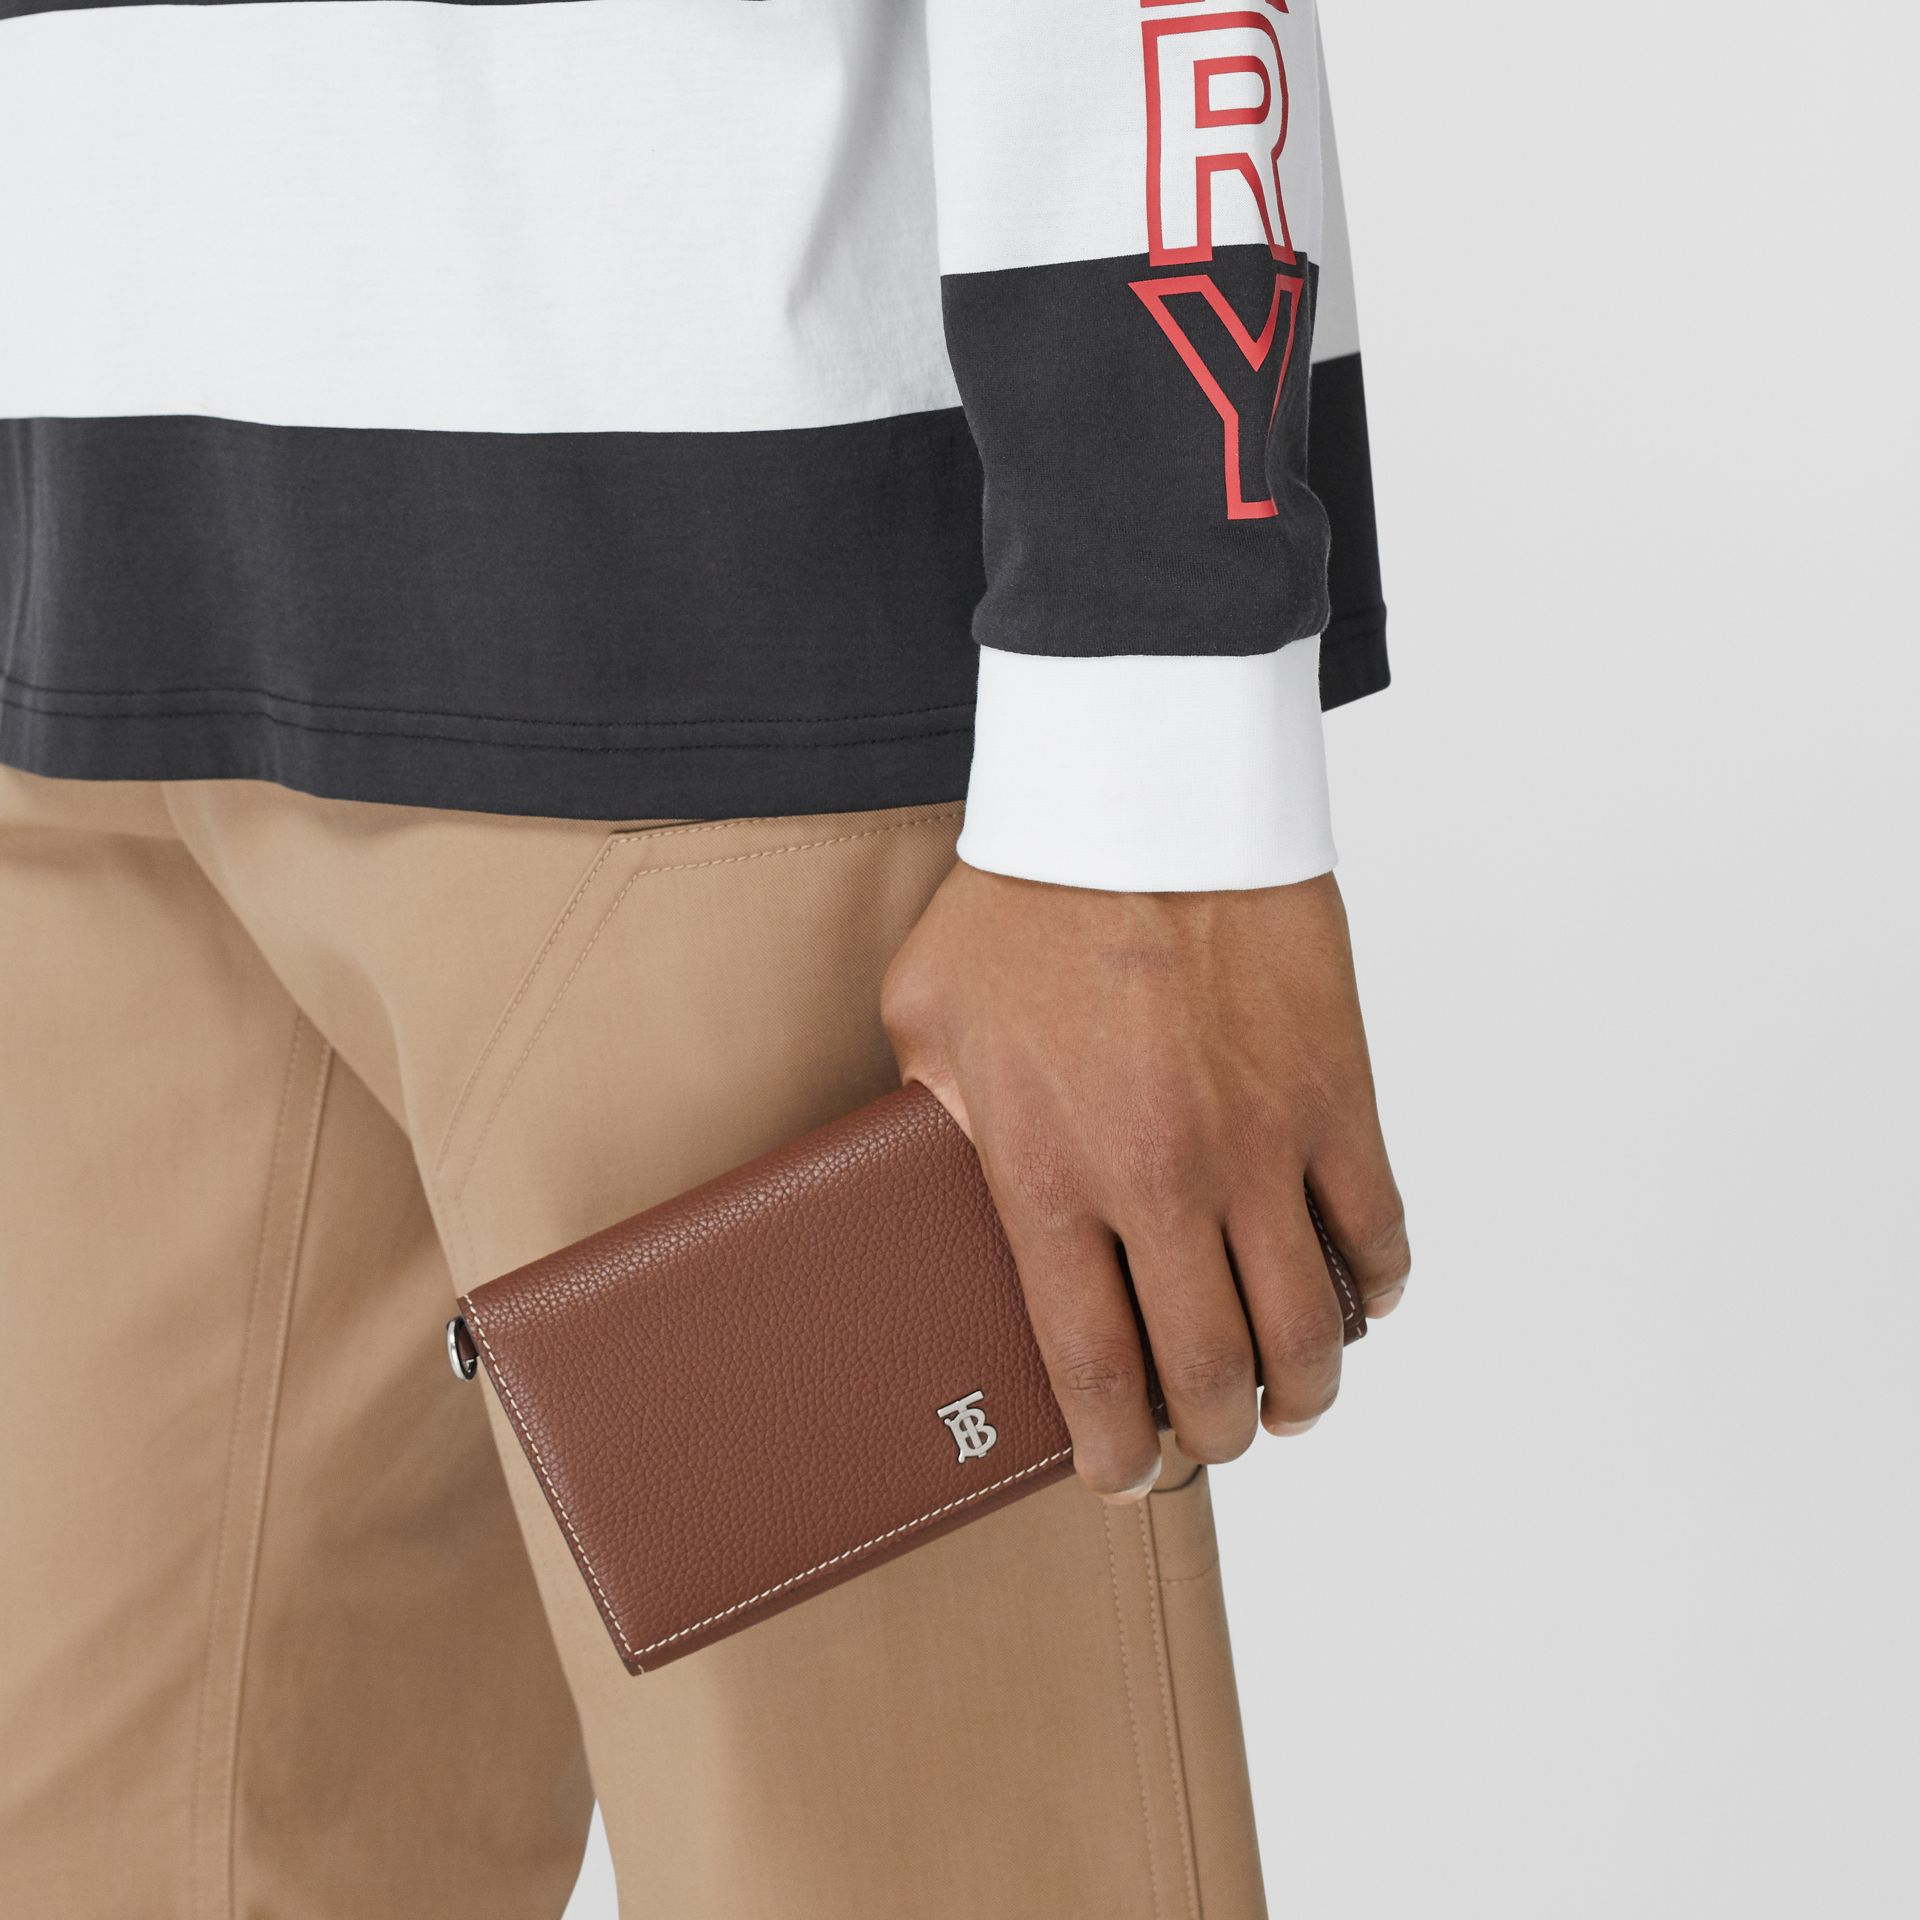 Grainy Leather Wallet with Detachable Strap in Tan | Burberry United States - gallery image 3